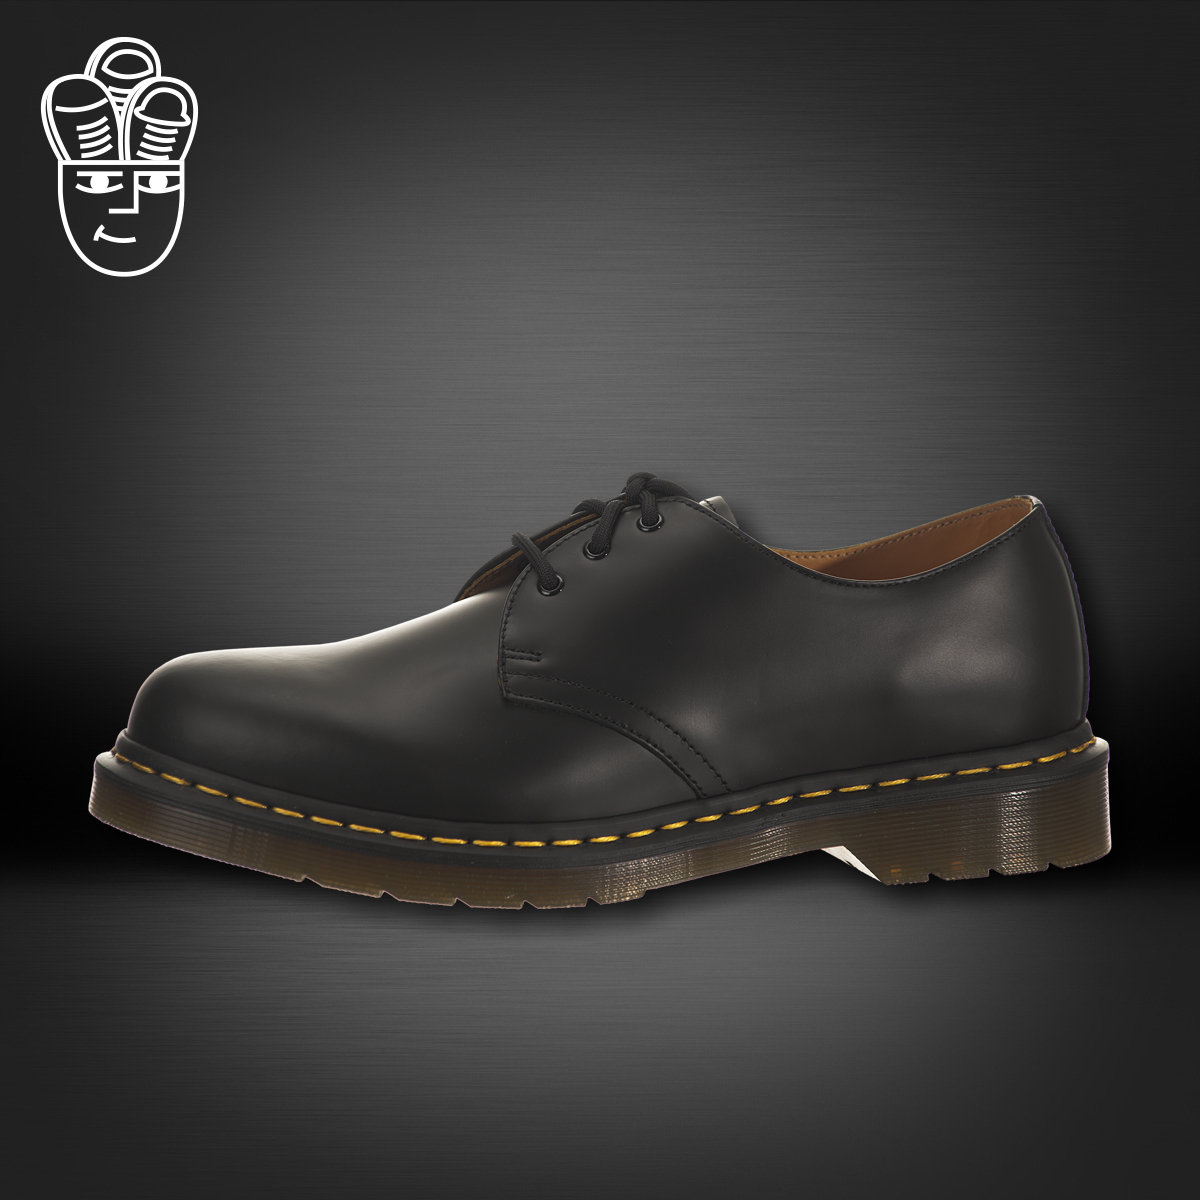 Dr. martens 1461 dr. martin boots to help low tide men solid martin boots genuine us